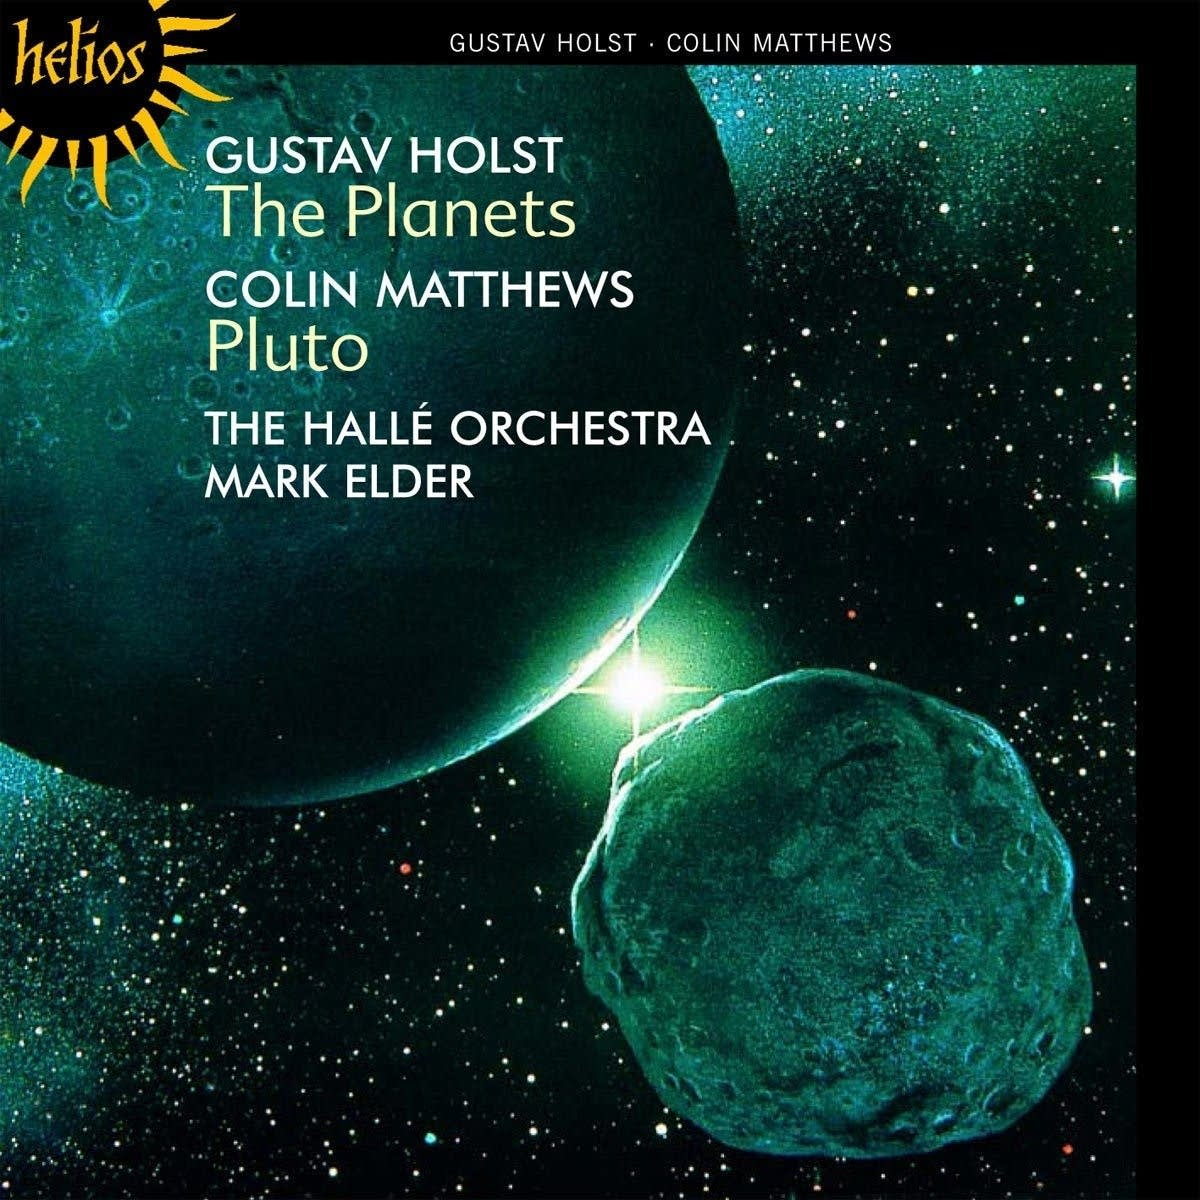 Mark Elder's recording of Holst's 'The Planets'